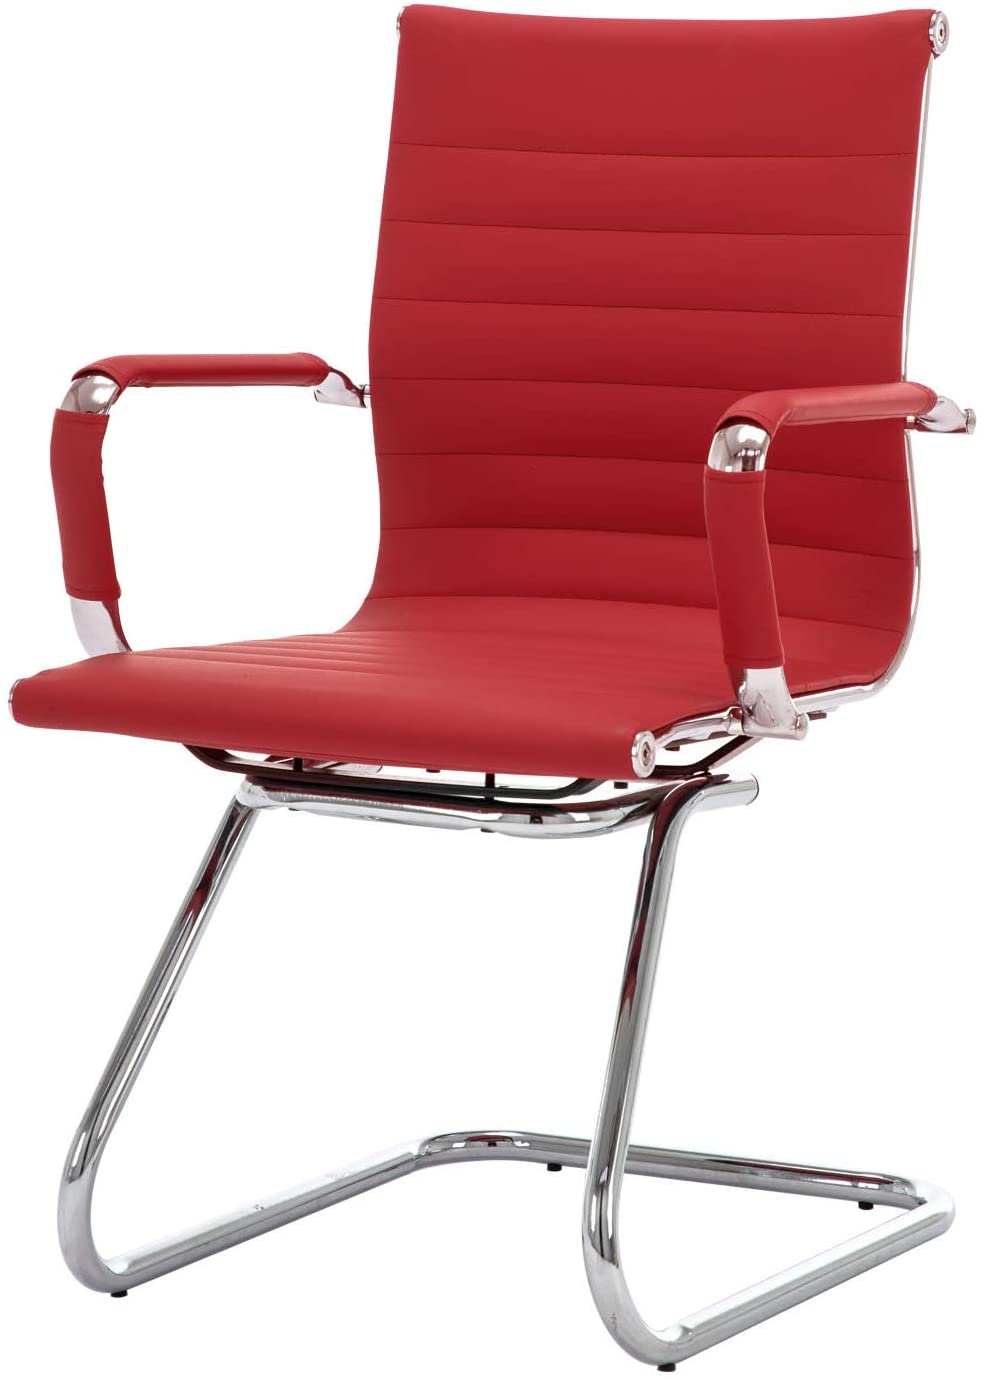 CIMOO Office Conference Chair Reception Guest Chairs PU Leather Mid Back Waiting Patient Room Chairs with Arms, Heavy Duty, Sled Base (Red, 1PC)